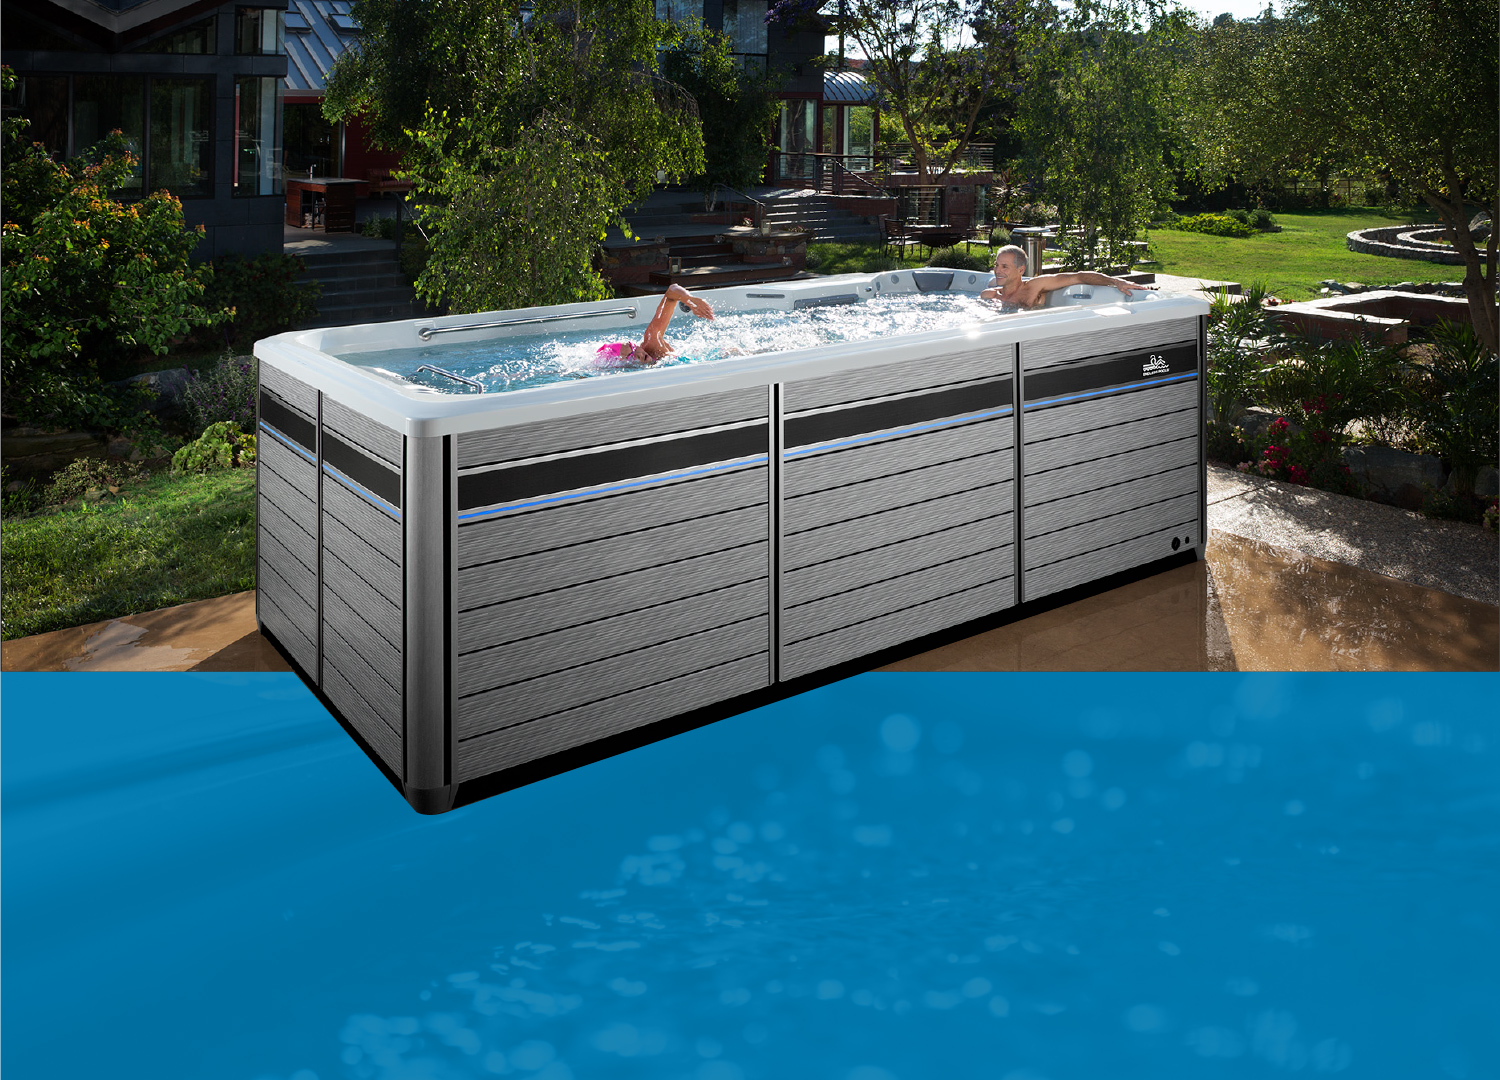 What is a swim spa more than a swimming pool spa pool - How much is an endless pool swim spa ...